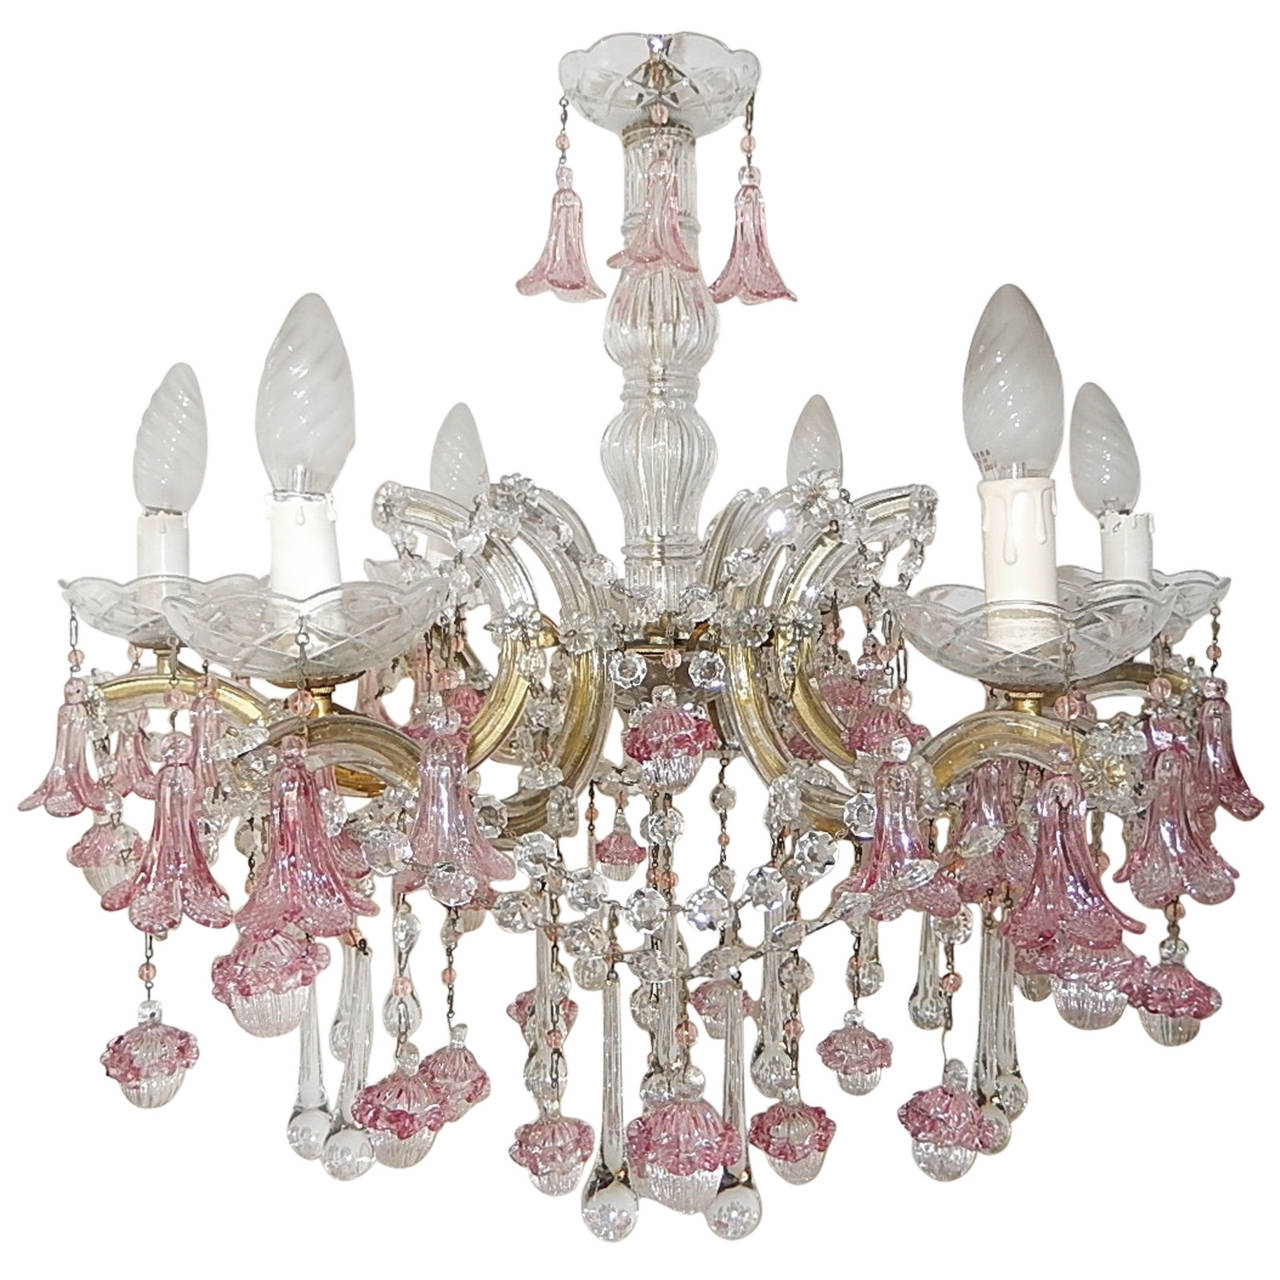 1920 French Fuchsia Murano Flowers And Balls Chandelier At 1stdibs Inside Fuschia Chandelier (Image 1 of 15)